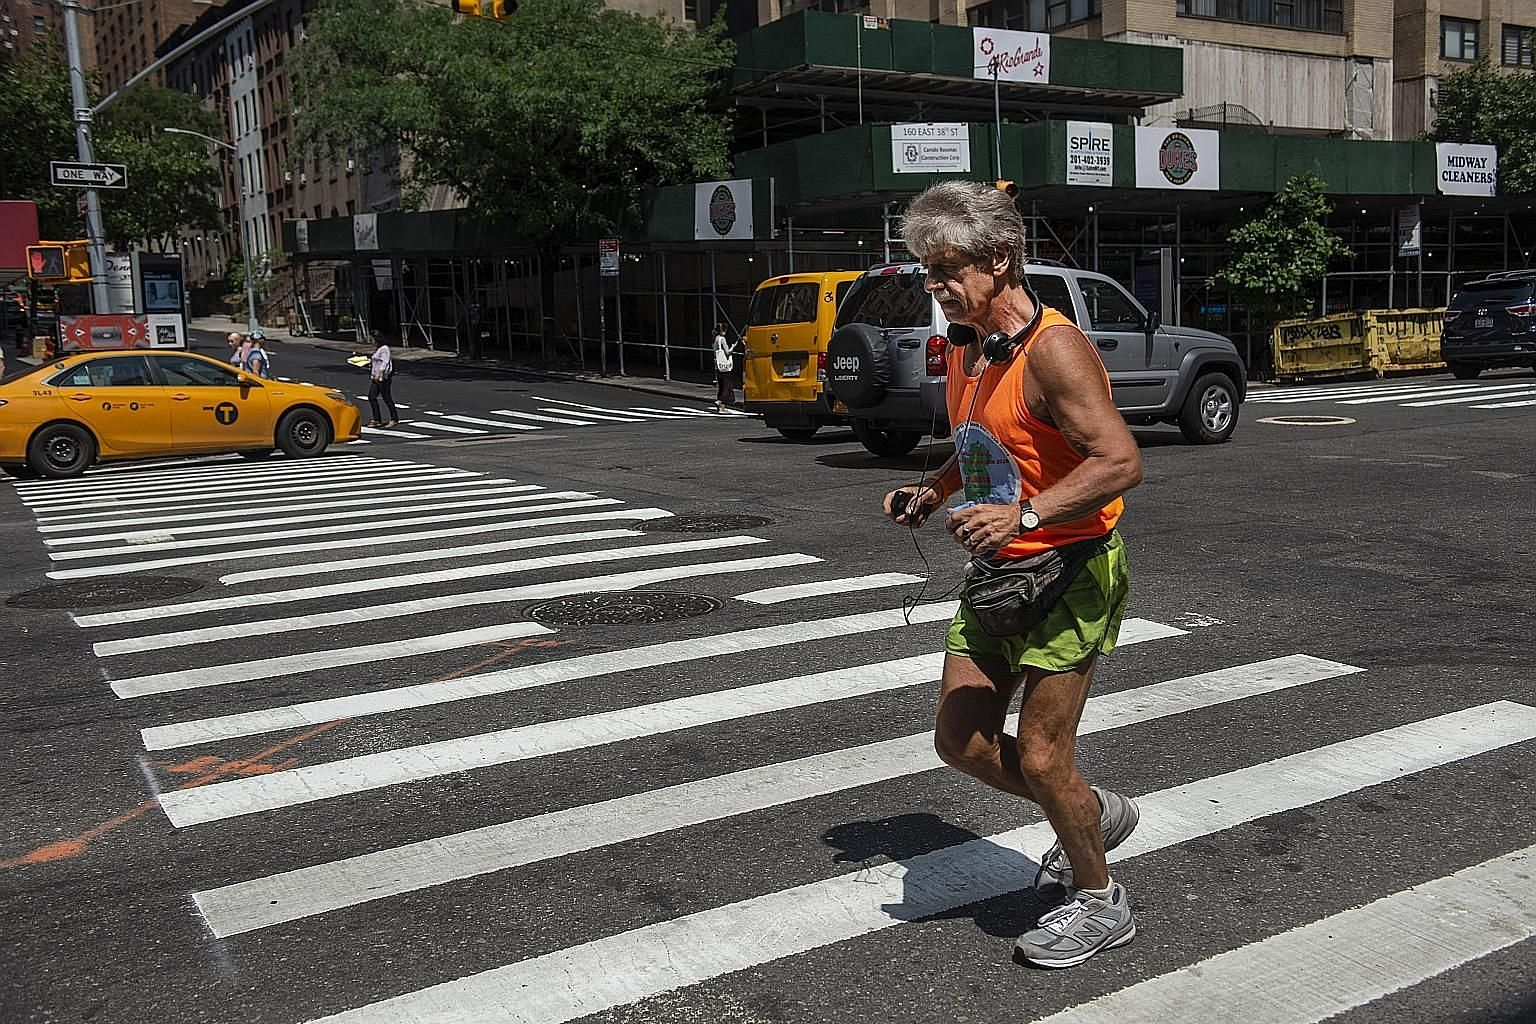 Mr Tom McGrath, 69, seen here on a run in New York earlier this month, is a star of the extreme long distance marathon sport of ultrarunning.